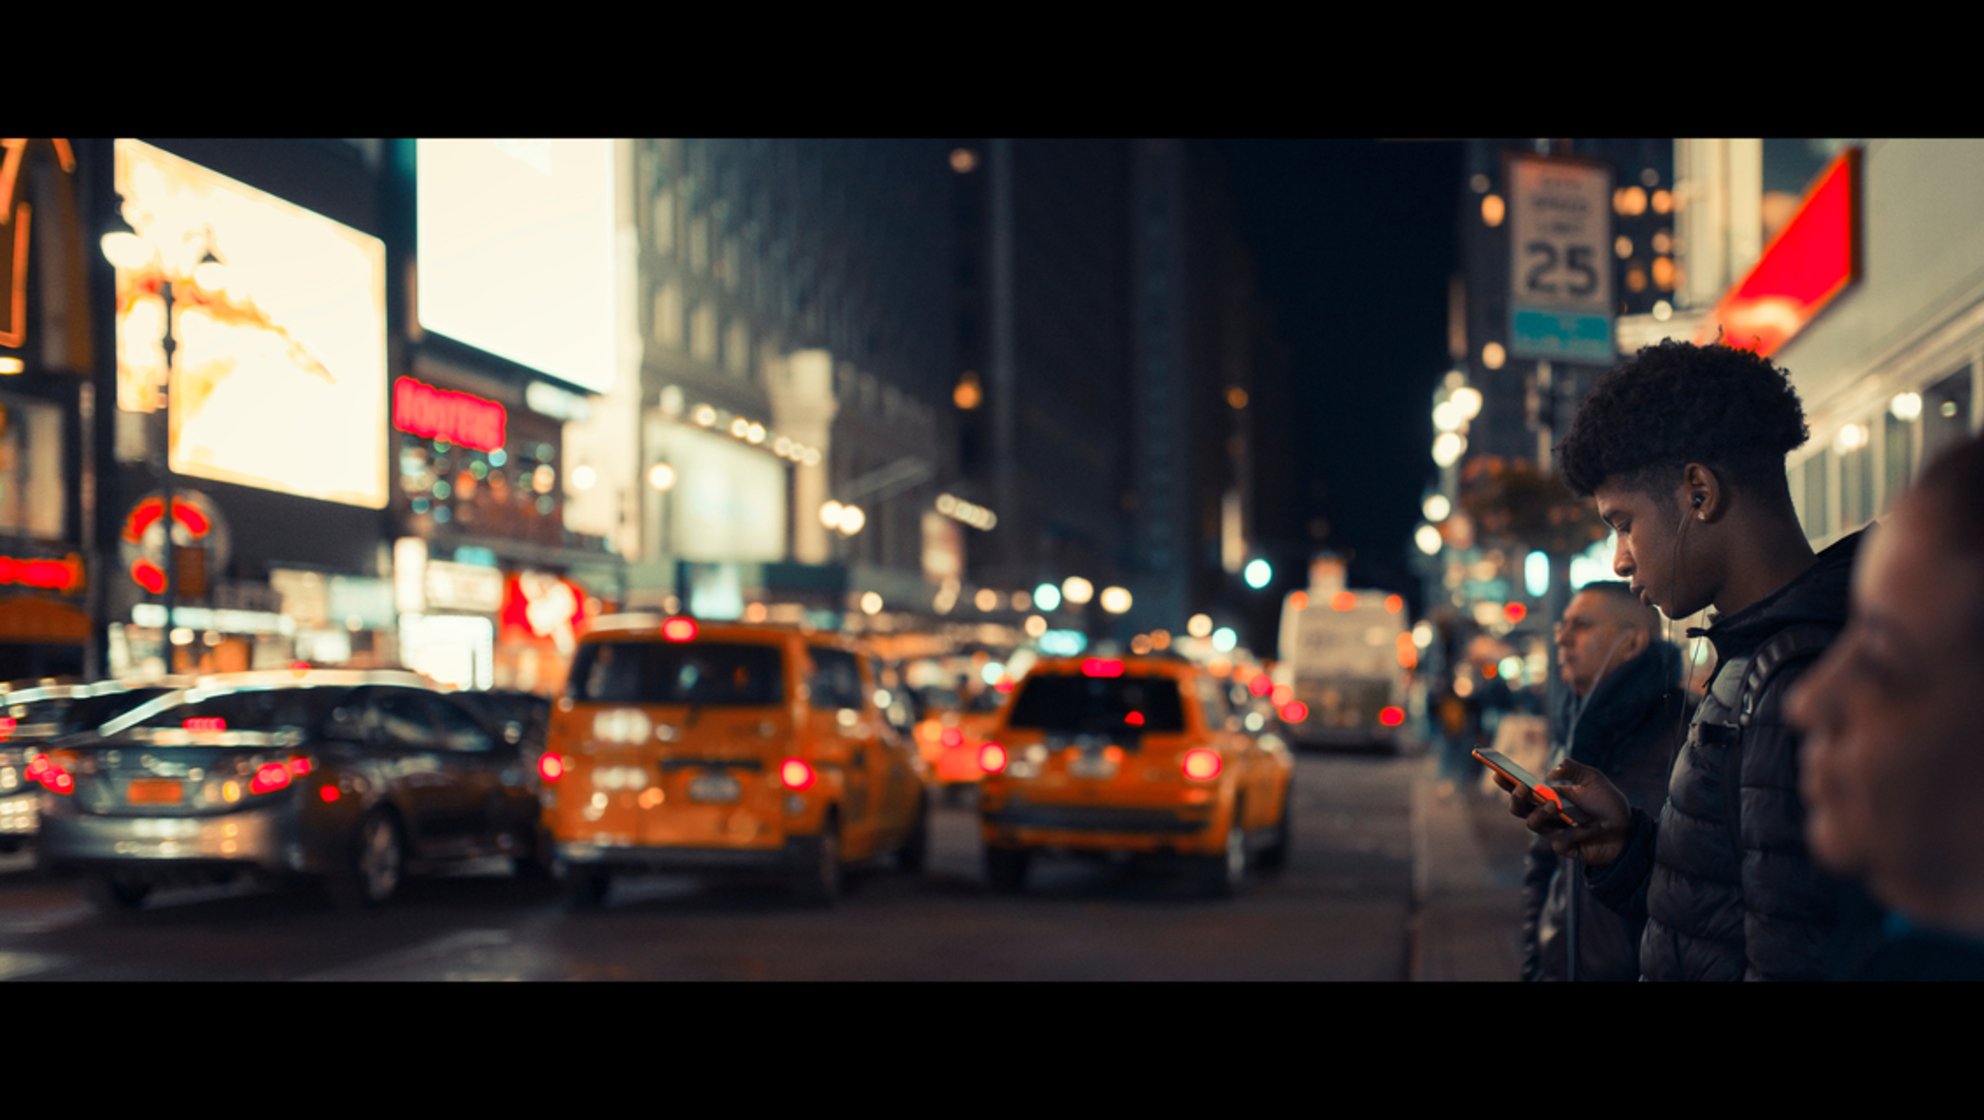 Best Kept Secret - [view full screen in a dark setting] - foto door CHRIZ op 18-03-2020 - deze foto bevat: man, mensen, straat, licht, avond, stad, nyc, nacht, film, manhattan, straatfotografie, 35mm, New York, cinematic, cinematic street, cinestill